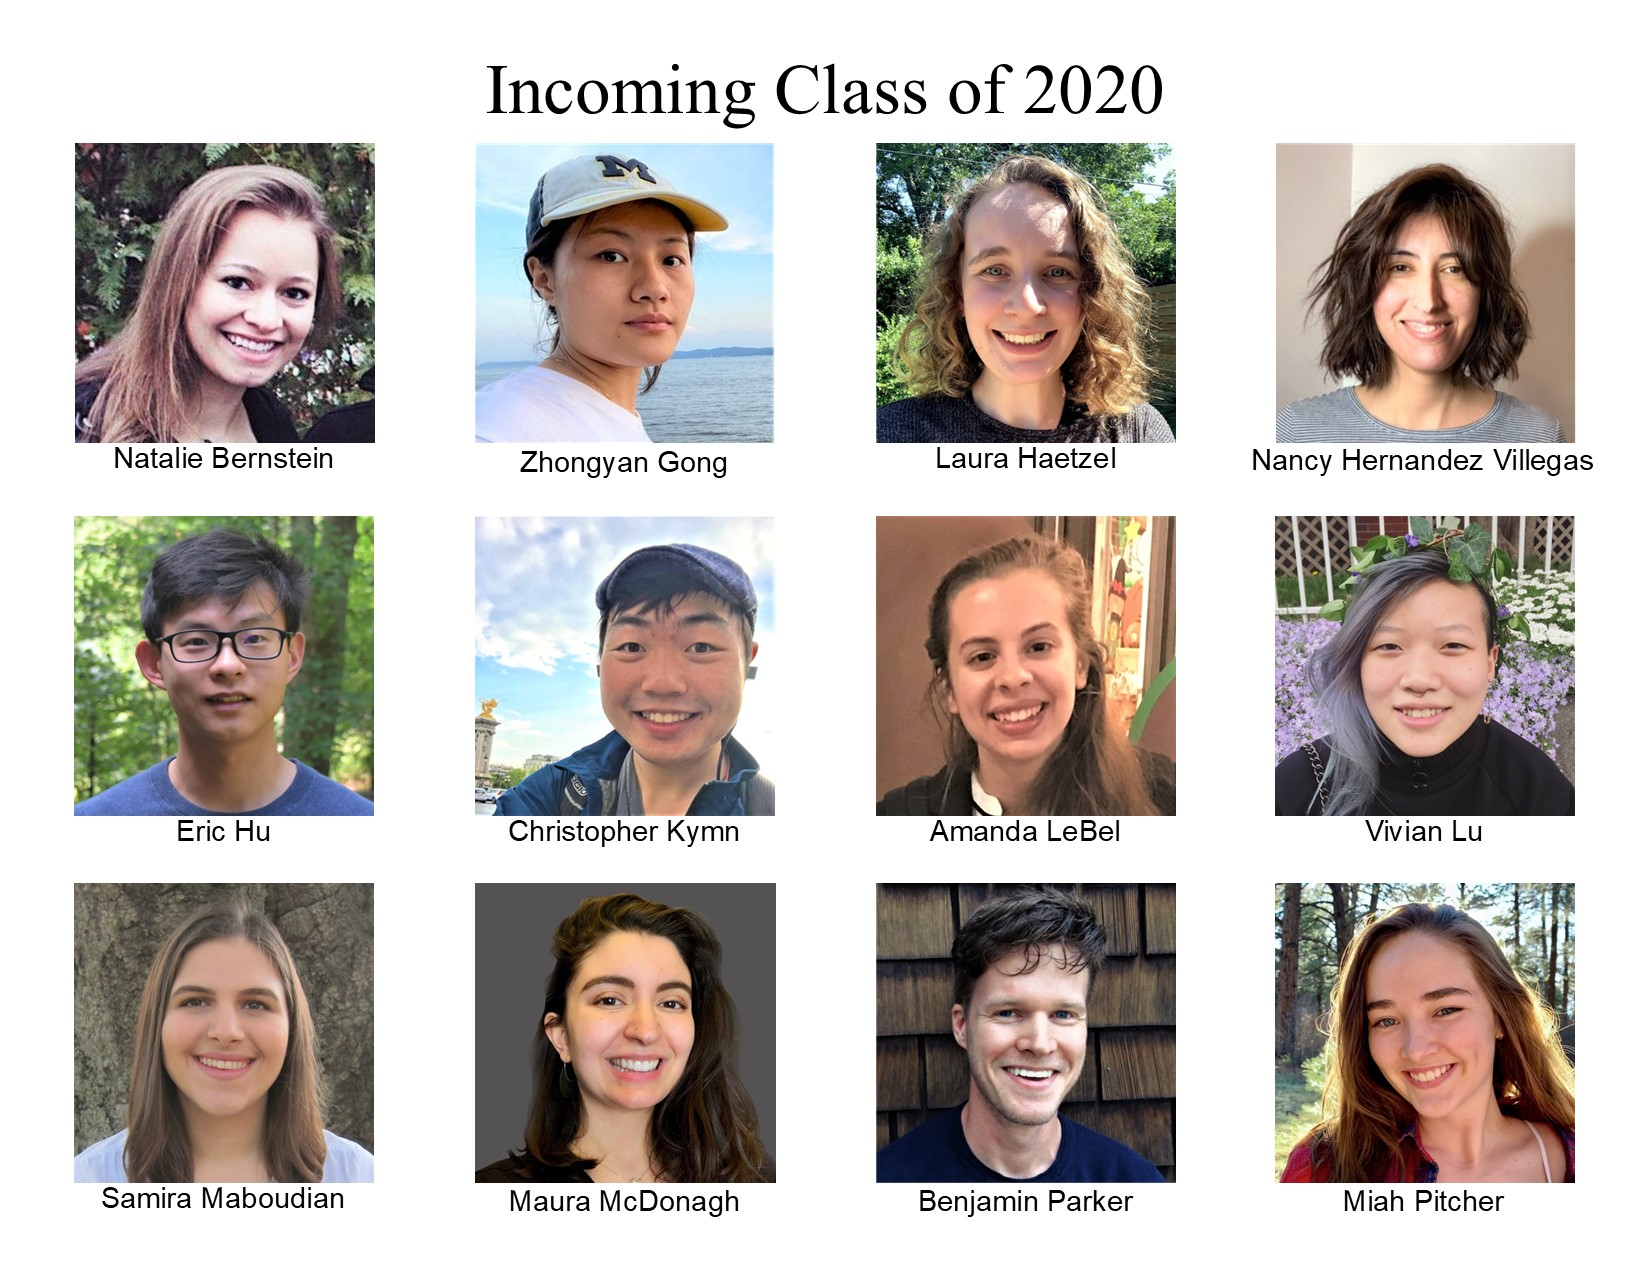 Headshots of the incoming class of 2020.